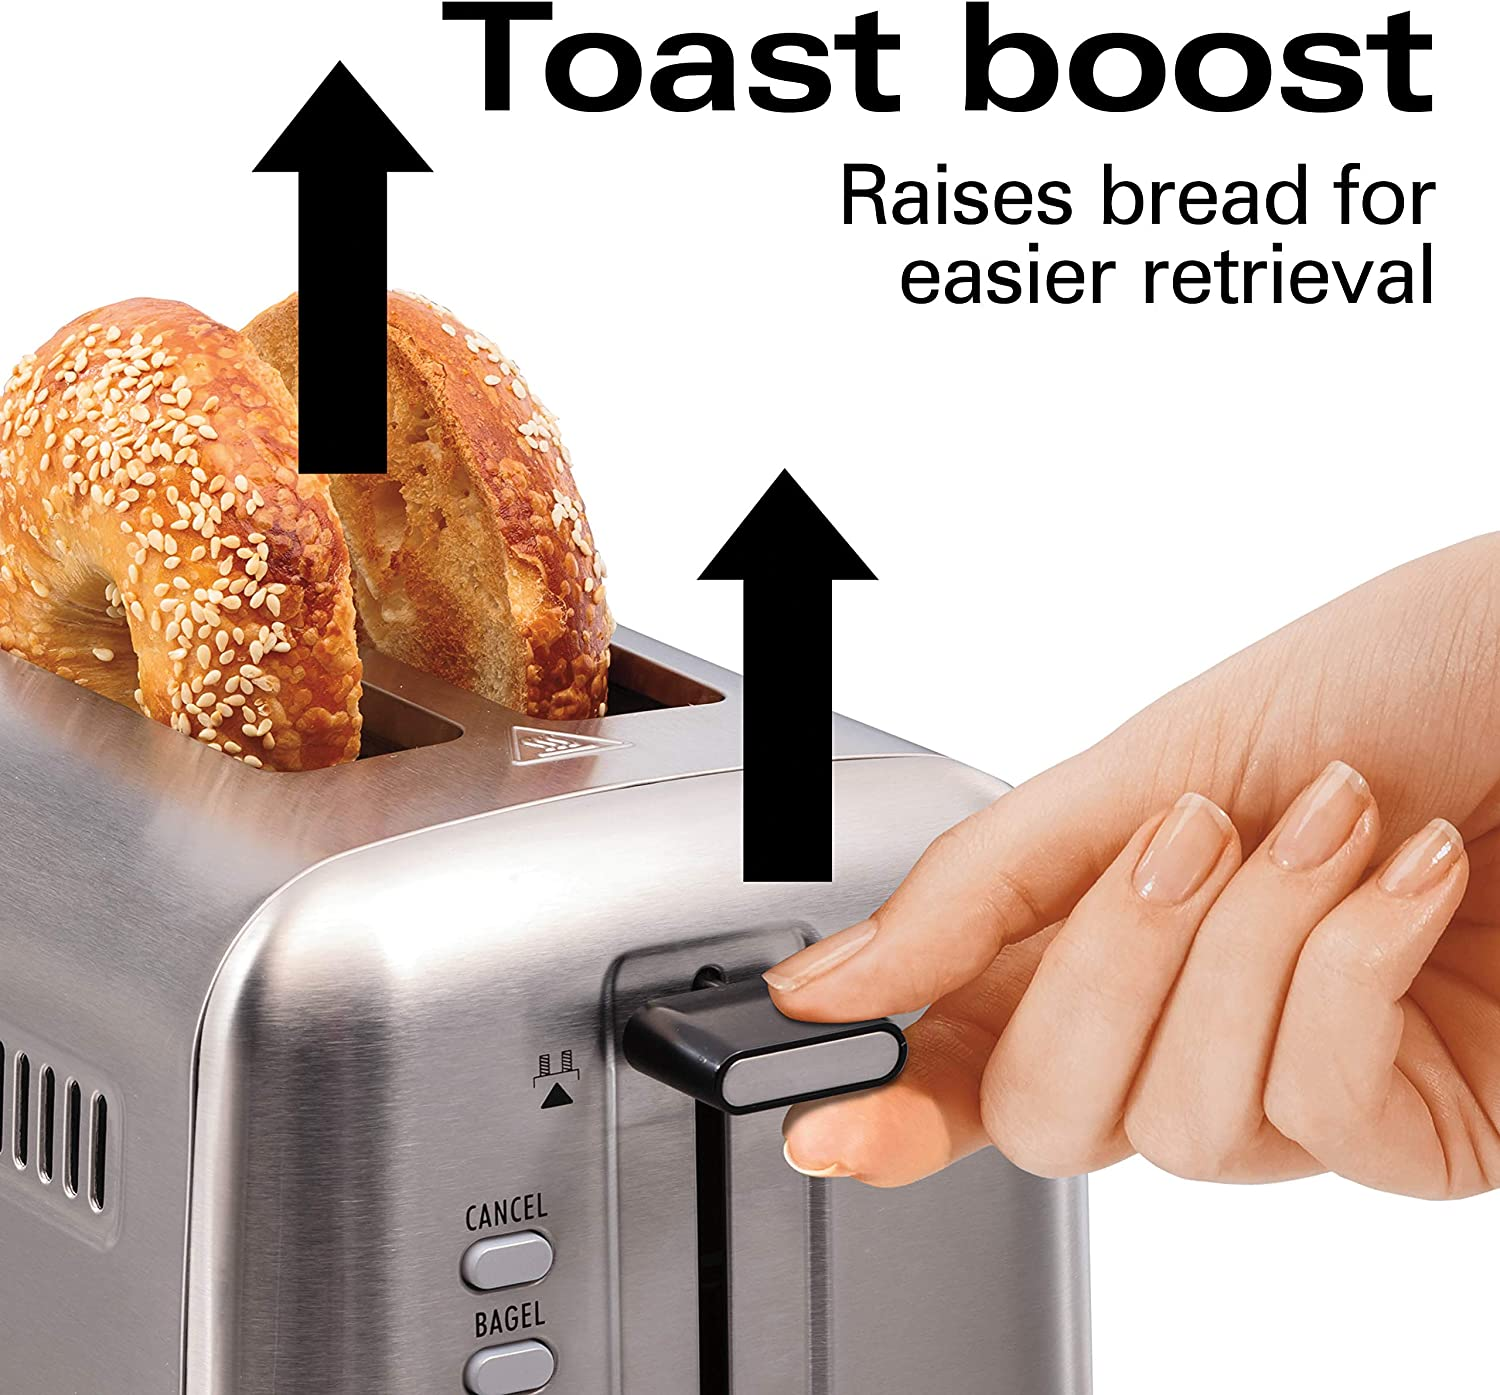 Hamilton Beach 22990 Professional 2 Slice Toaster, with Bagel, Defrost Reheat Settings, Stainless Steel